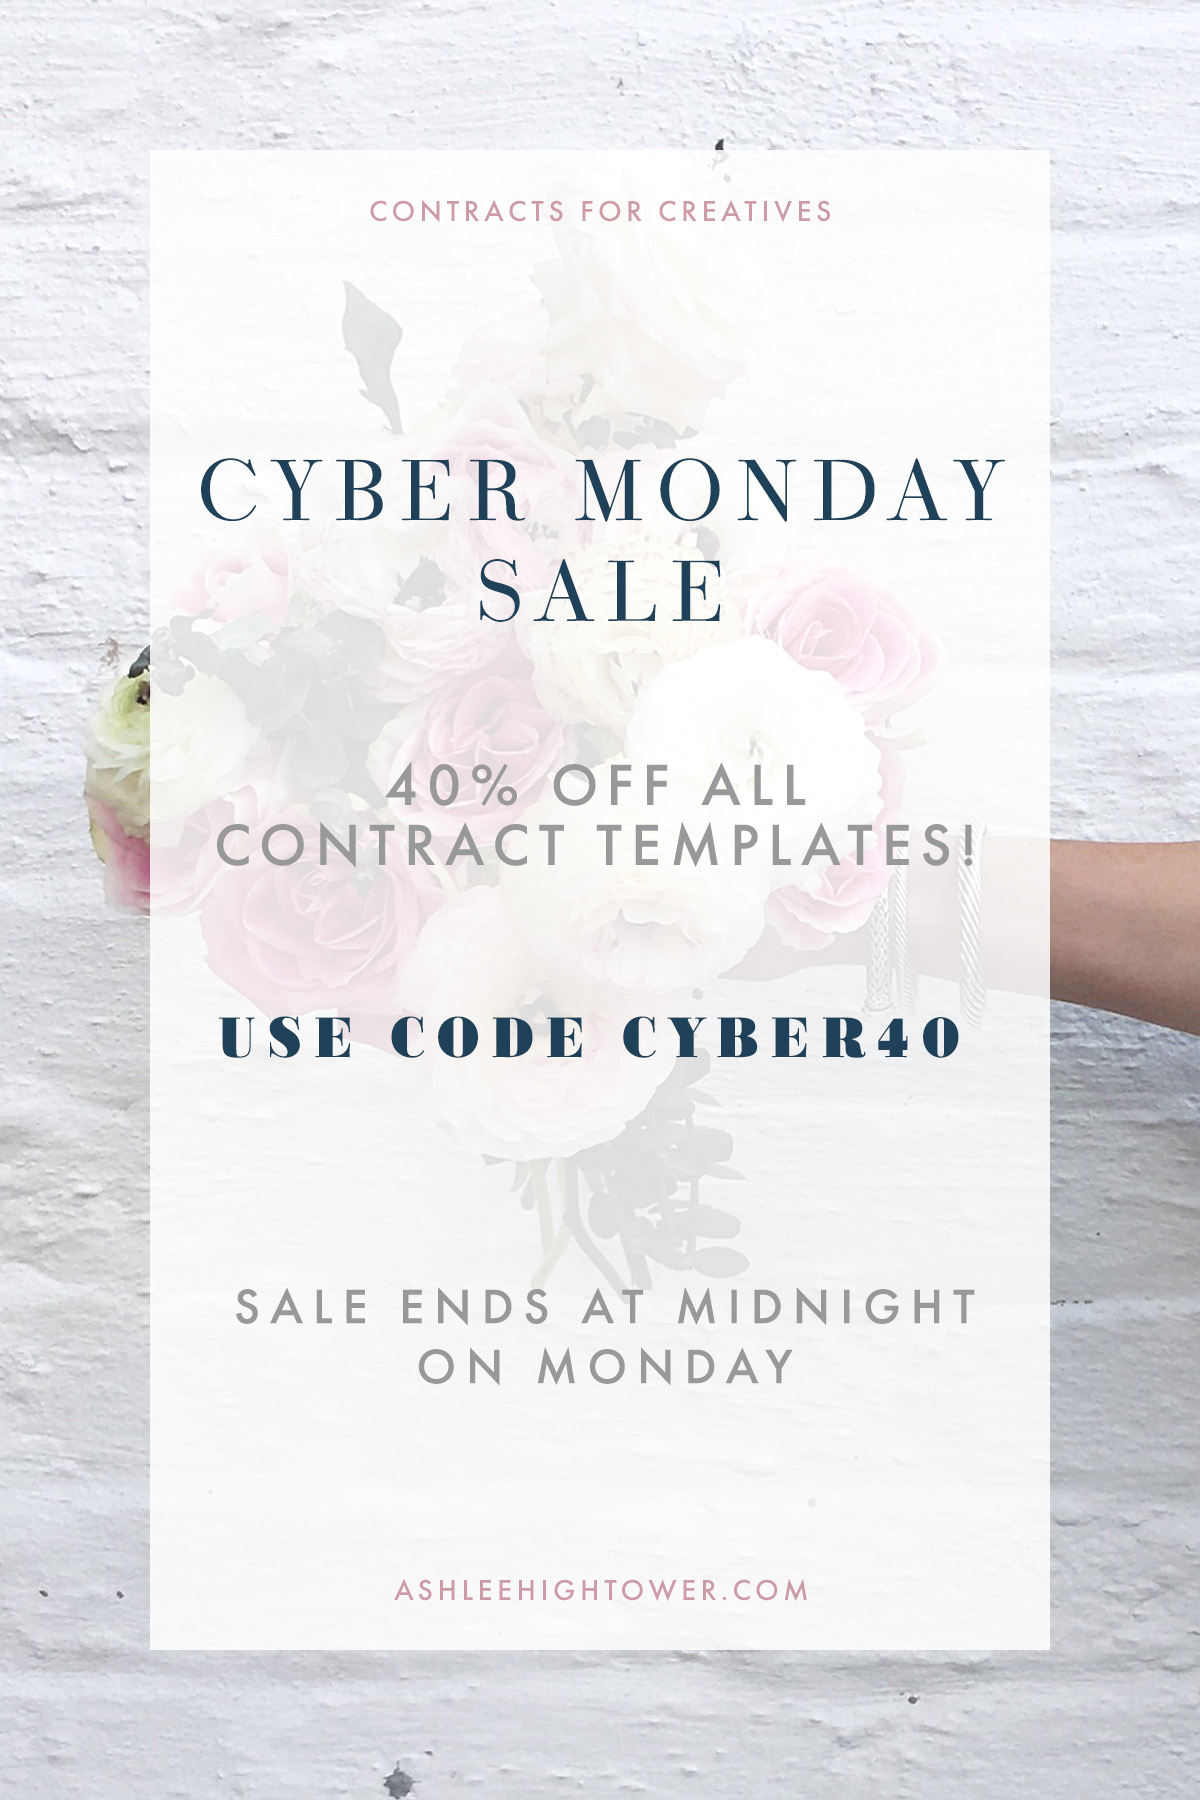 Contracts for Creatives | Cyber Sale | Contract Templates for Creative Entrepreneurs